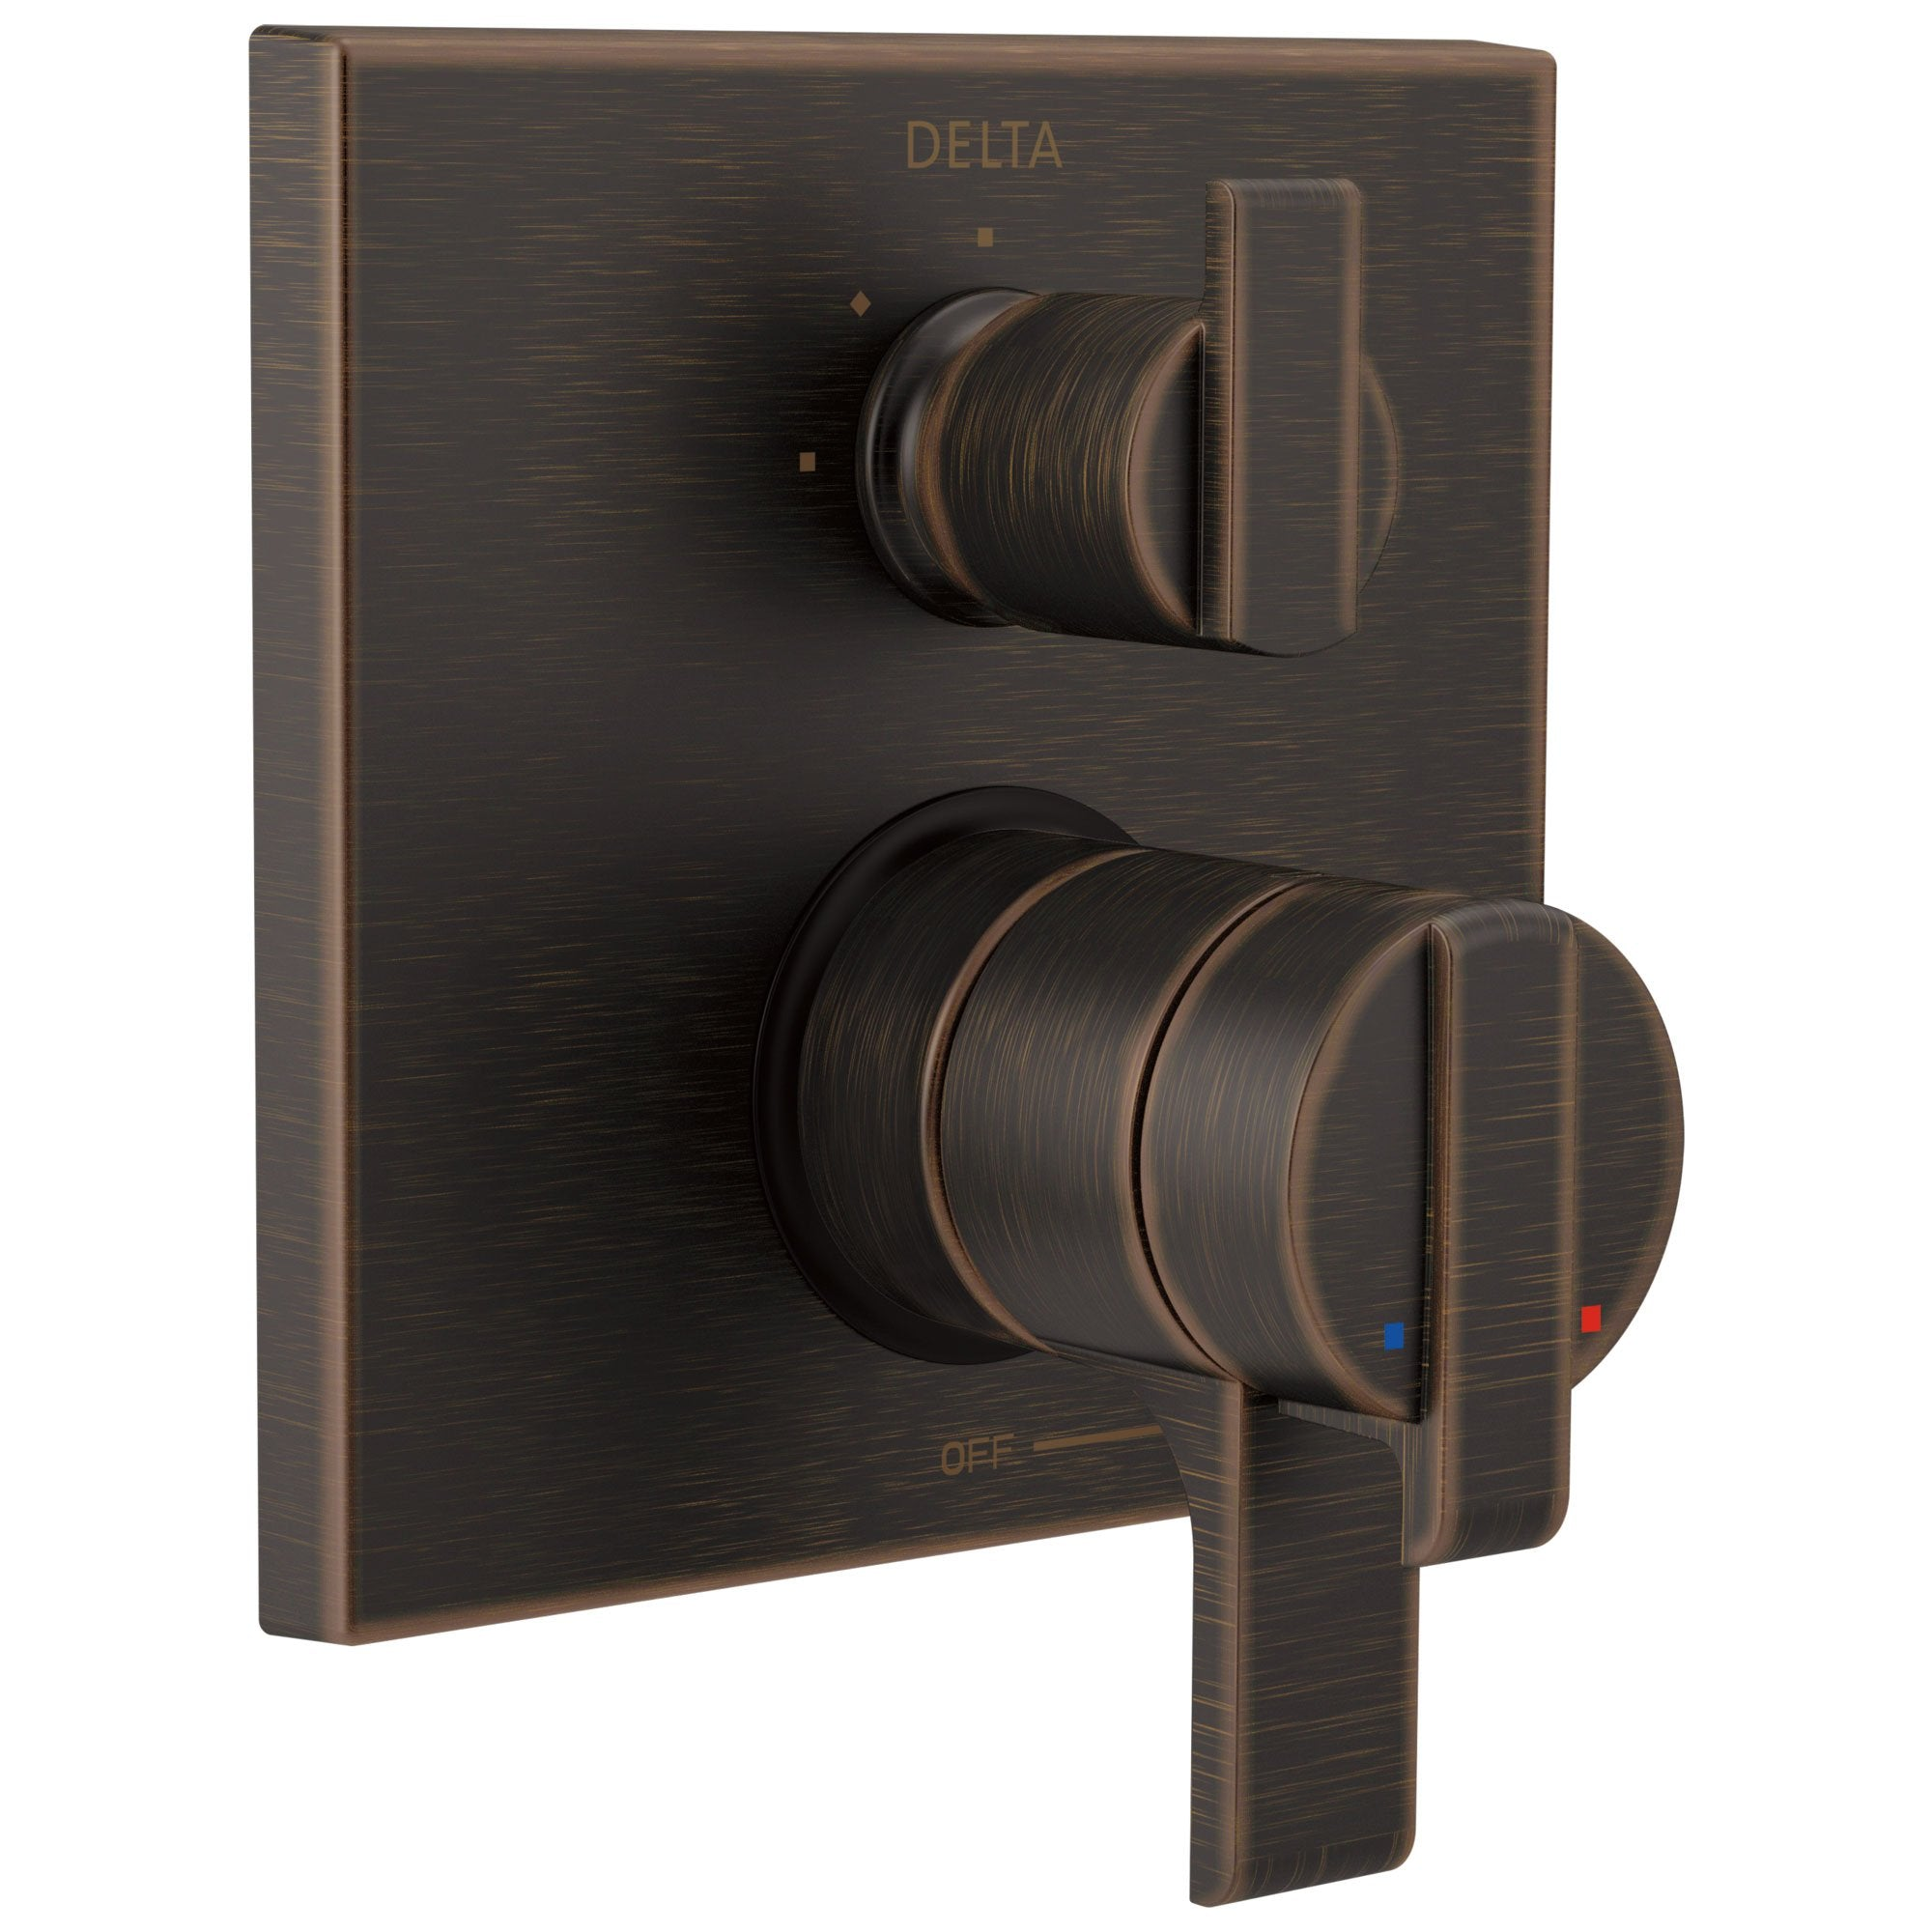 Delta Ara Venetian Bronze Modern Monitor 17 Shower Faucet Control Handle with 3-Setting Integrated Diverter Includes Trim Kit and Valve without Stops D2171V